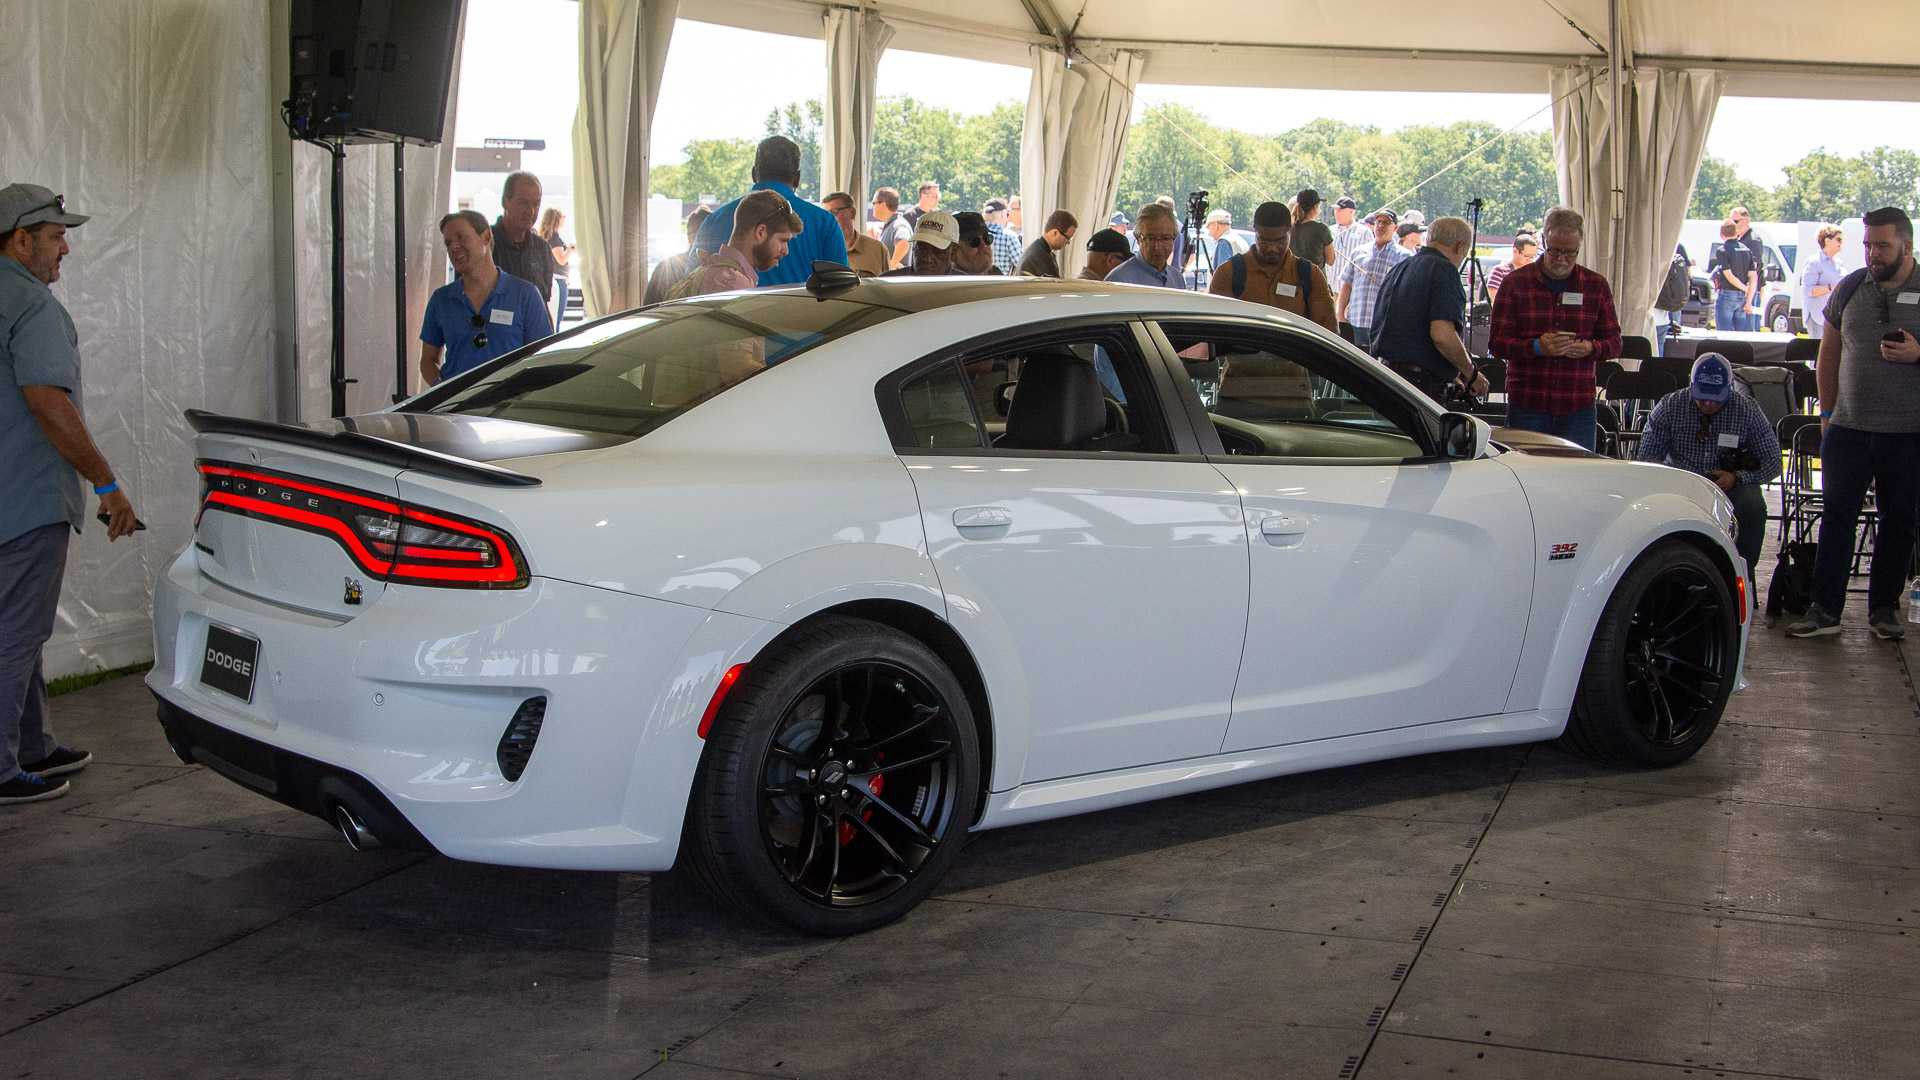 2020 dodge charger srt hellcat widebody and scat pack widebody (7)